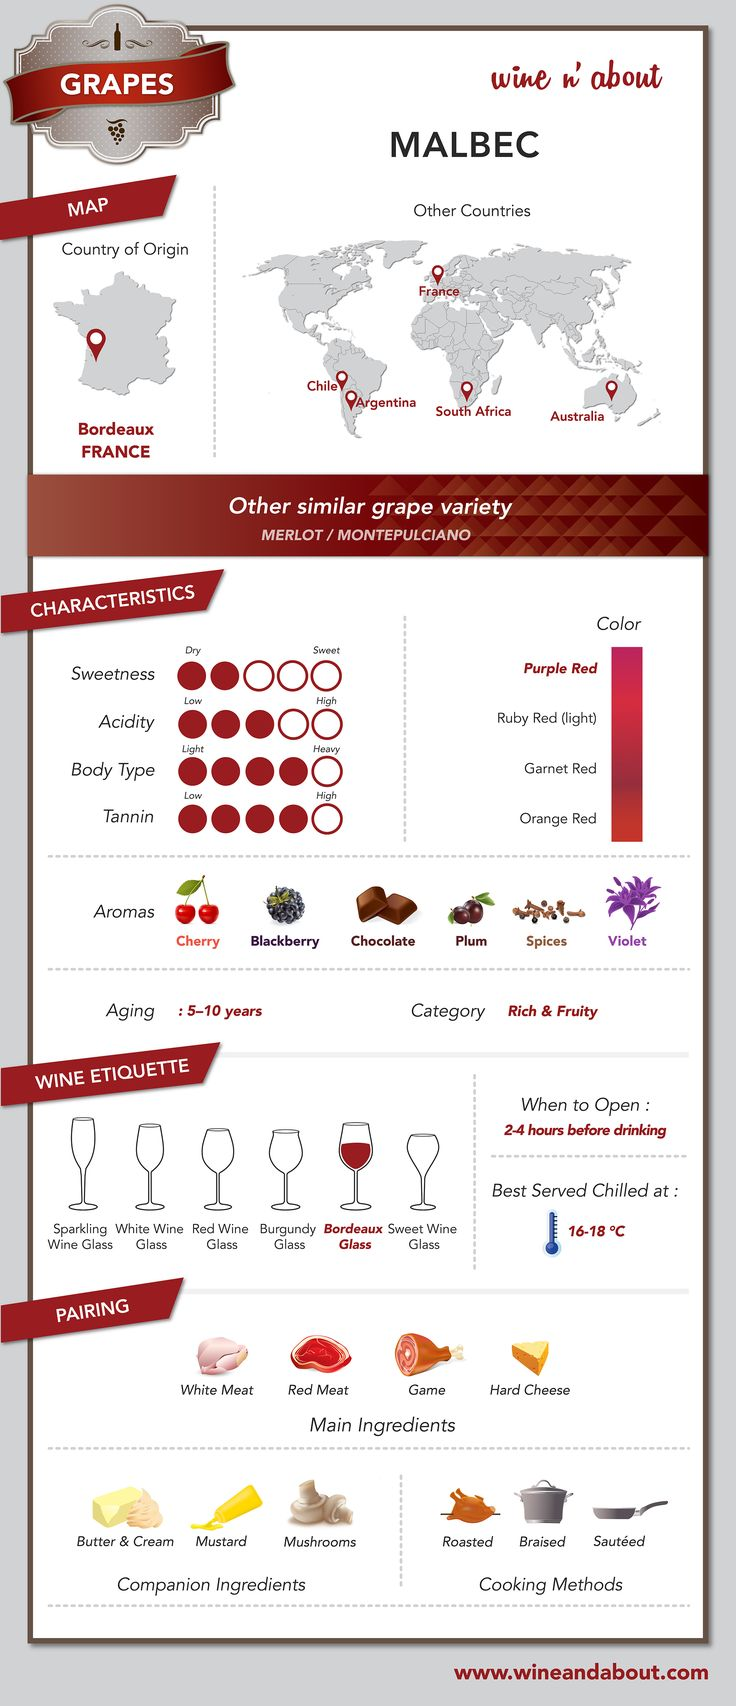 The Malbec grape is used to produce medium to full-bodied, dry red wine with good acidity and higher tannins and alcohol levels. The grapes tend to have dark, inky purple color profiles and ripe fruit flavors of cherry, plum and blackberry, which give to Malbec wines a decidedly jammy character.